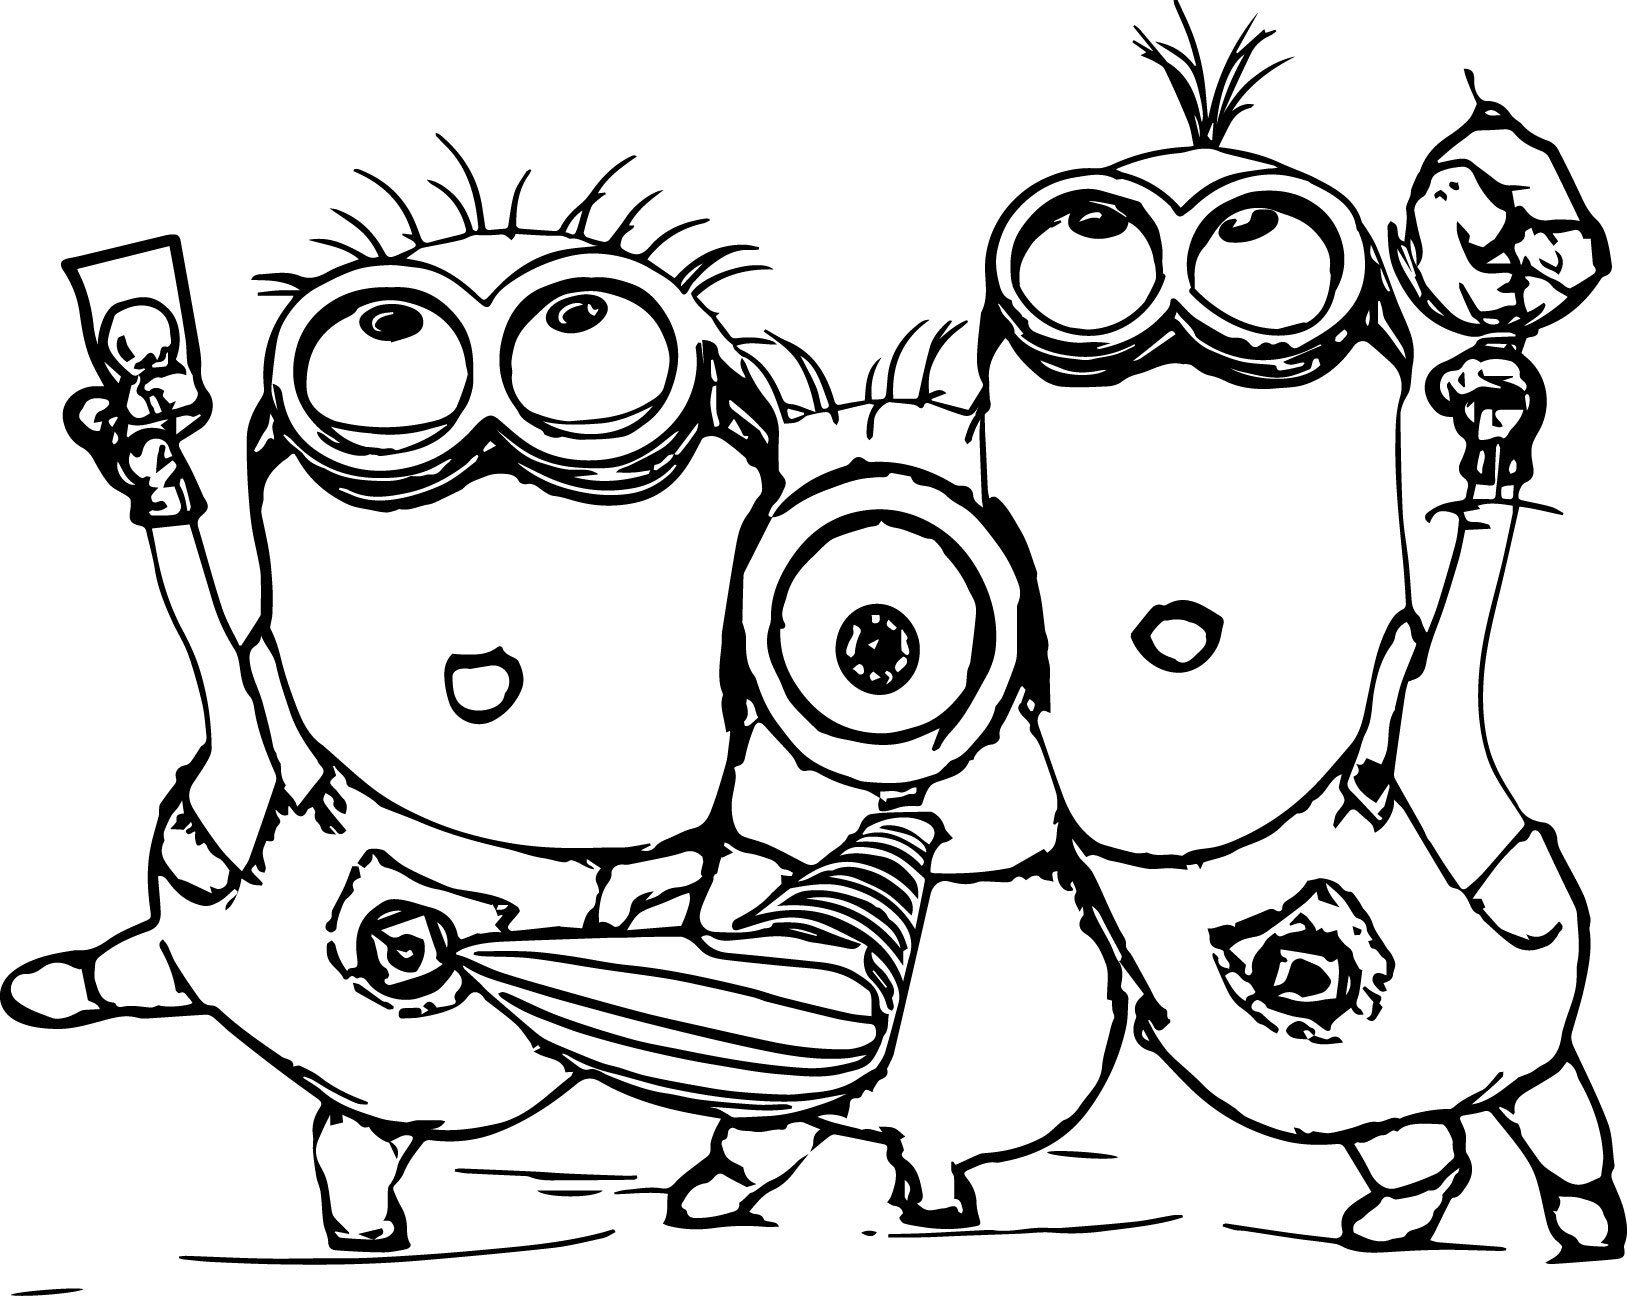 coloring printable minions print download minion coloring pages for kids to have coloring printable minions